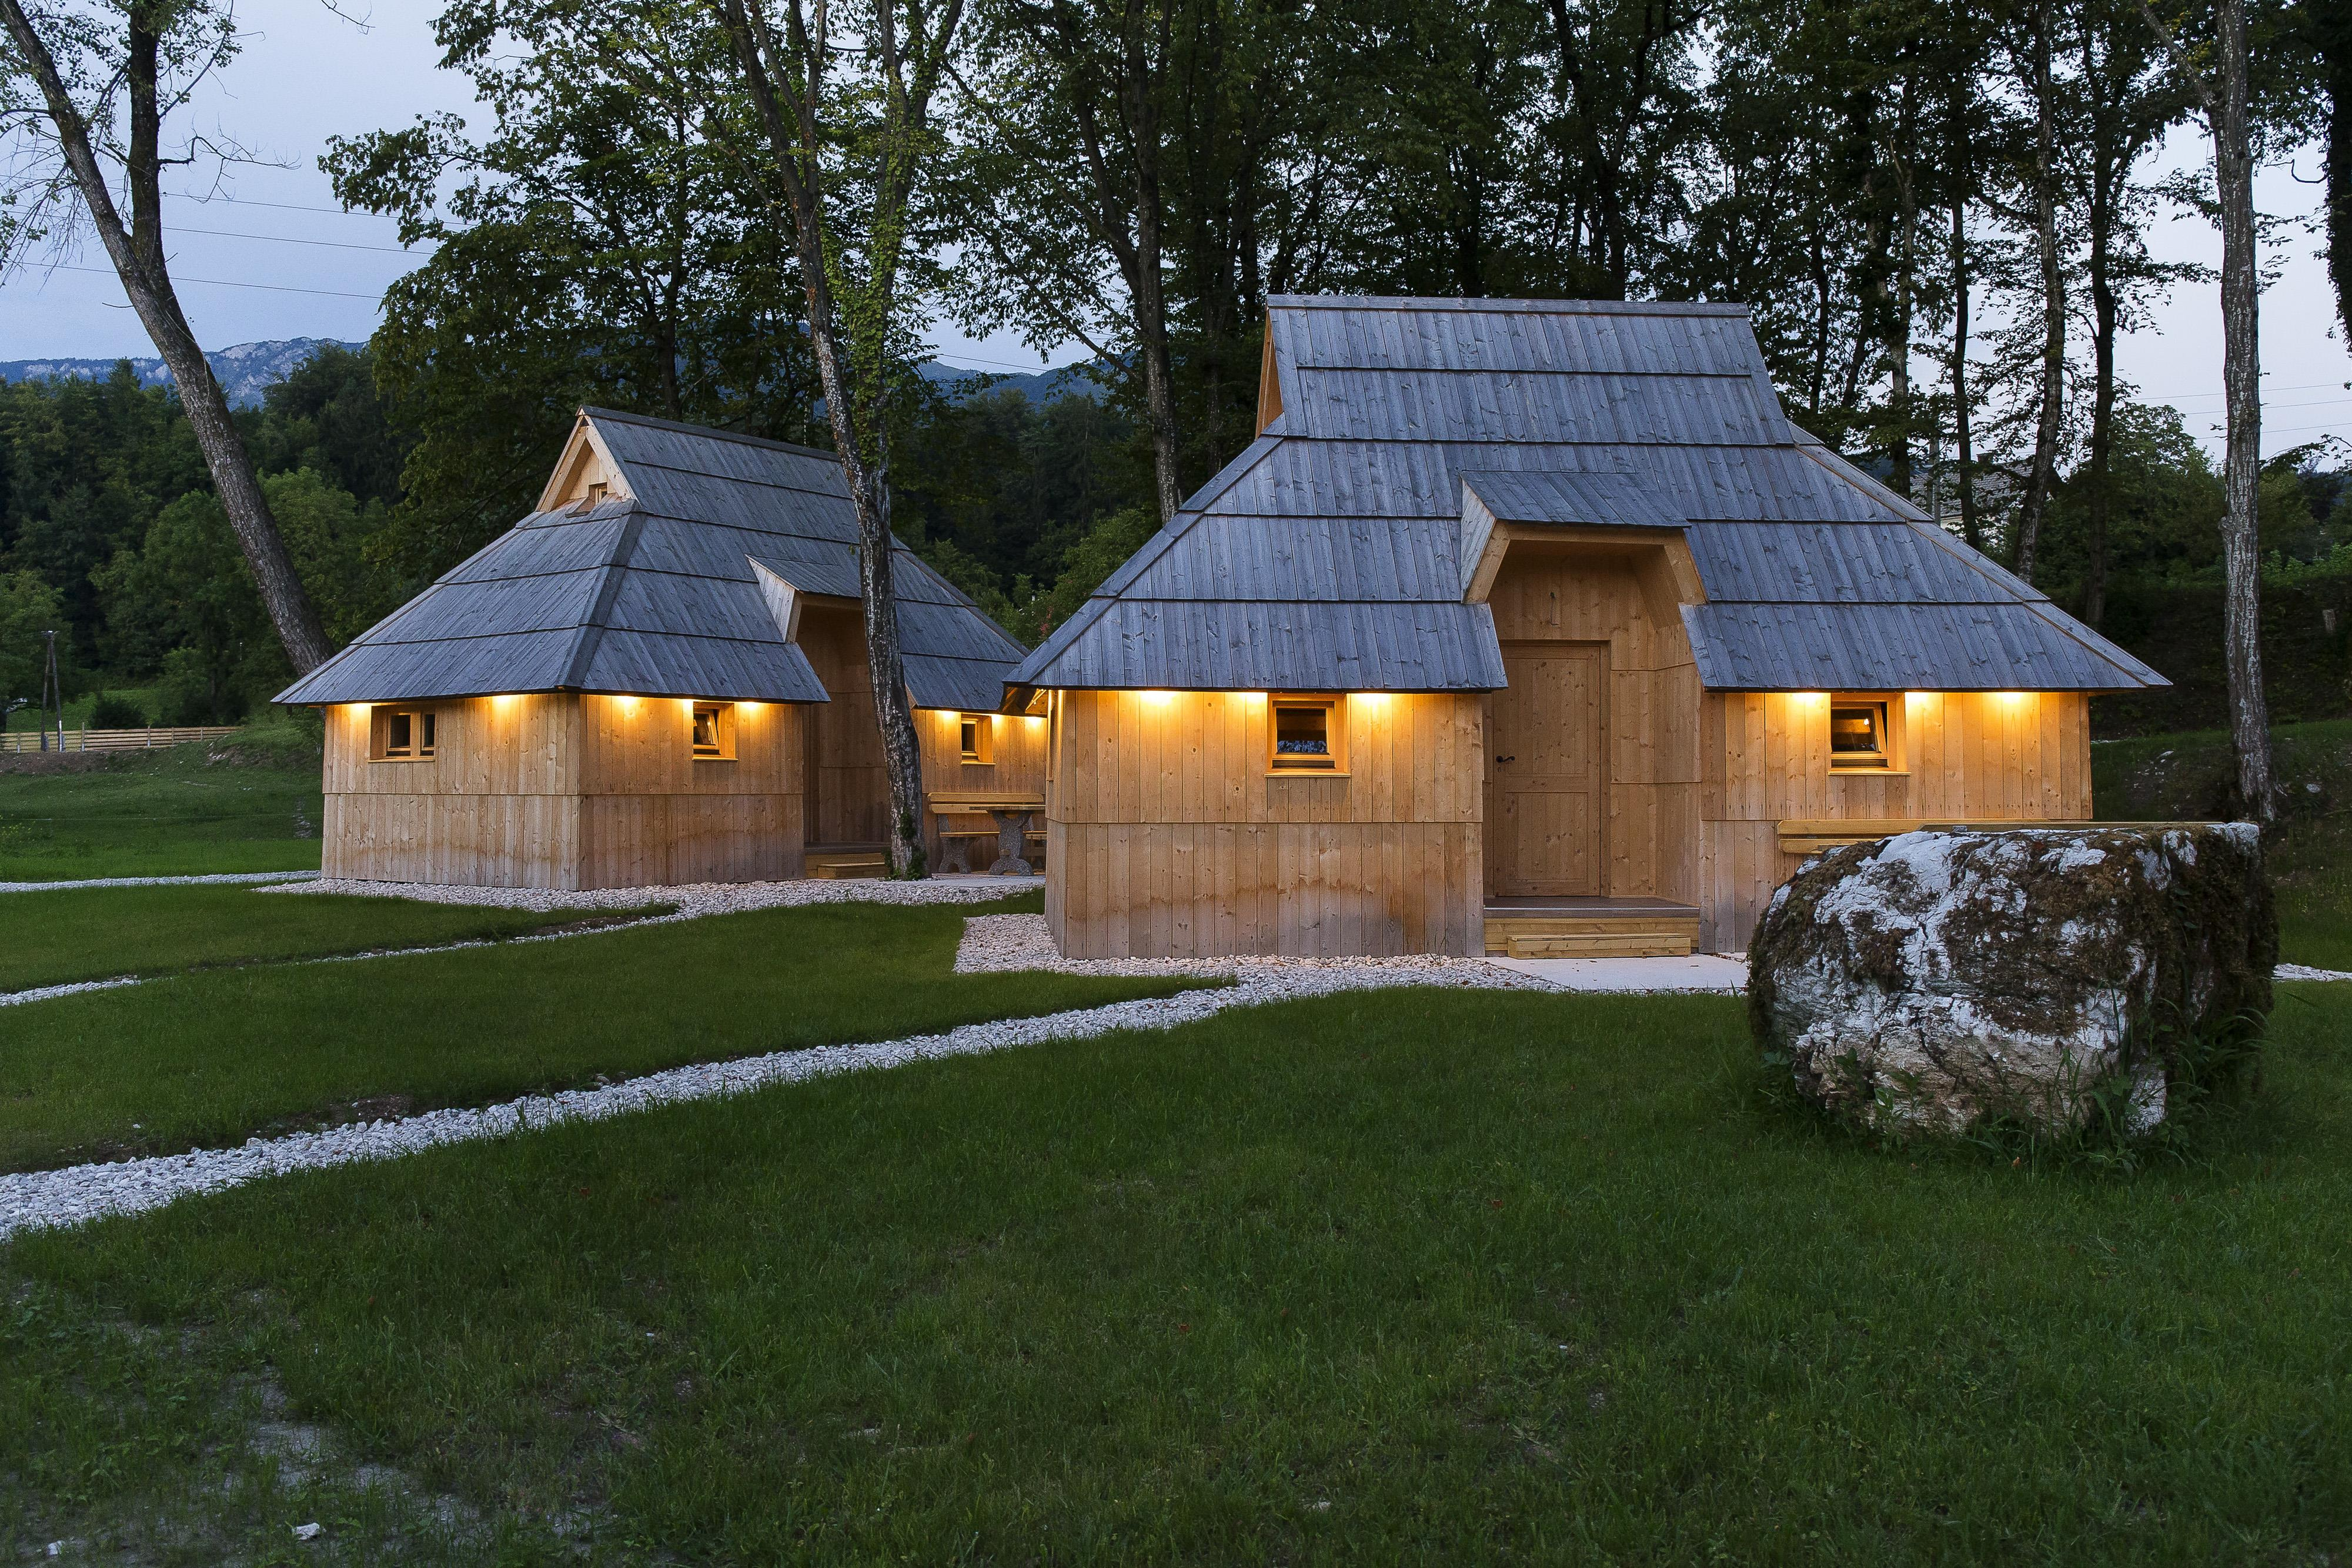 Alojamientos - Wooden Lodge - Slovenia Eco Resort